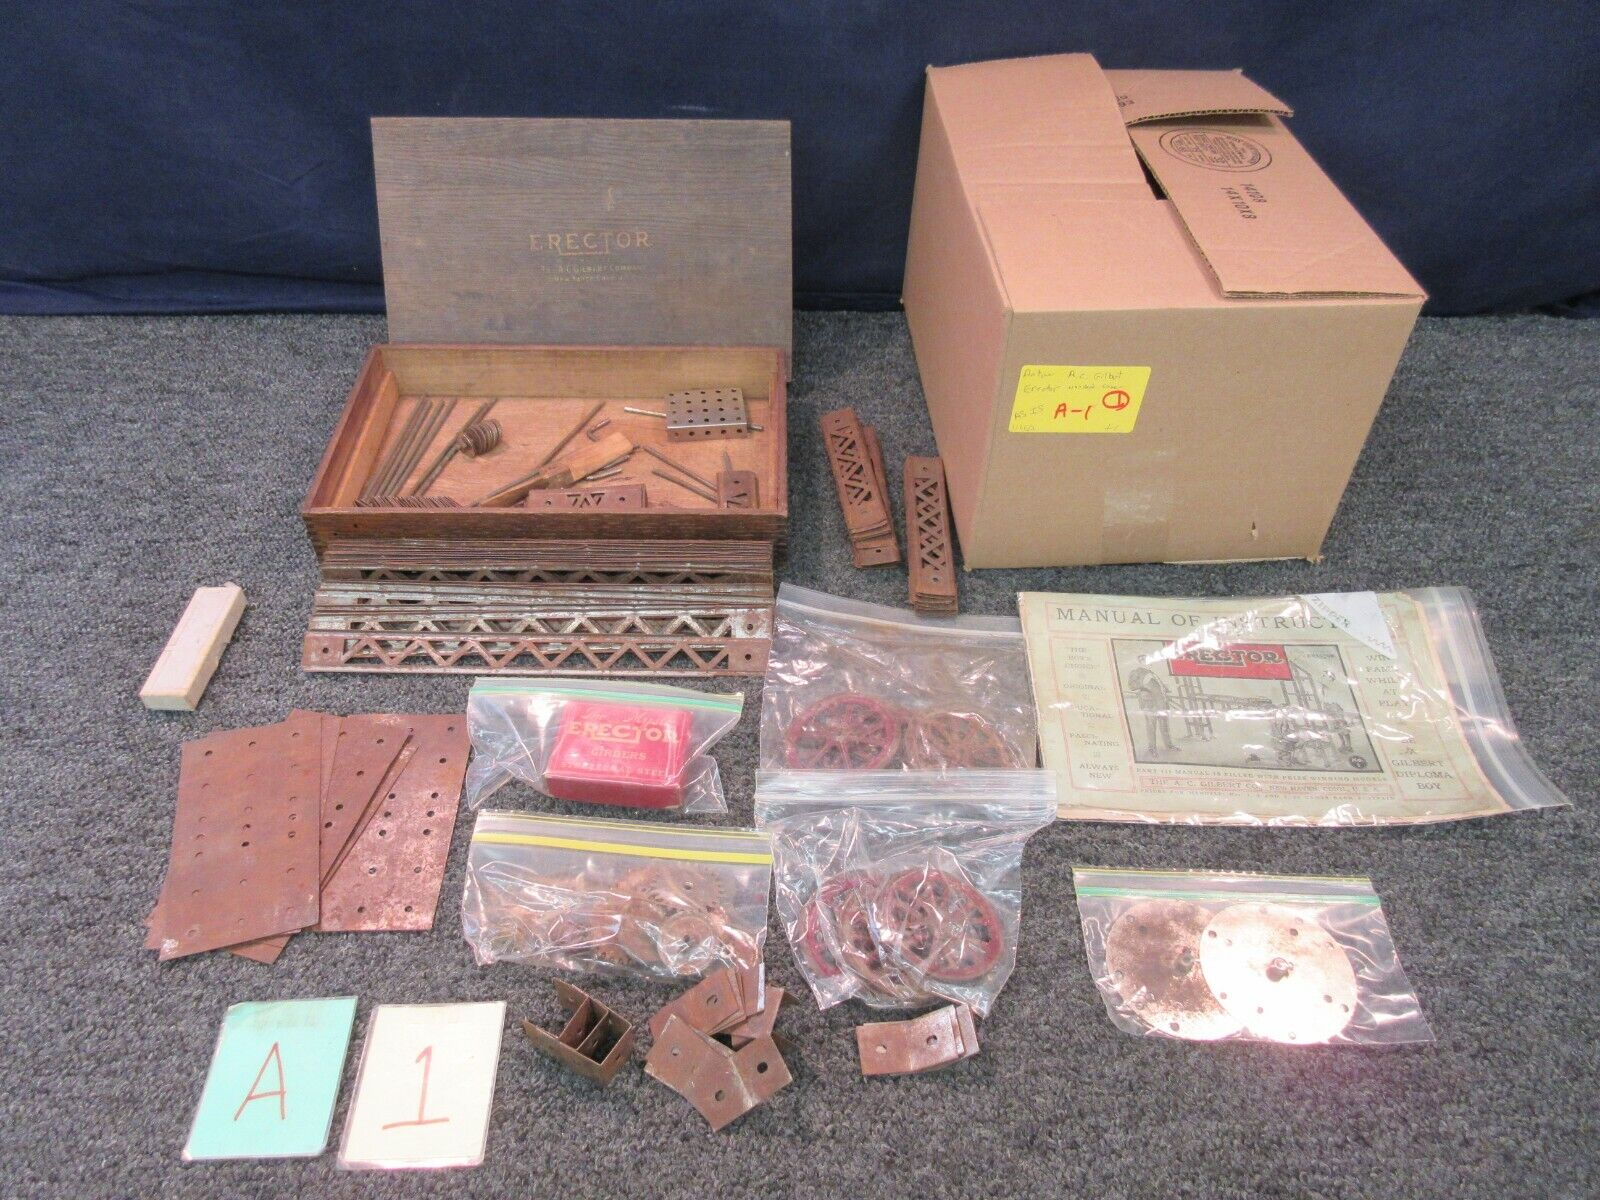 AC Gilbert Vintage Antique Erector Part 1 Manual Catalog Wood Box Toy Collector